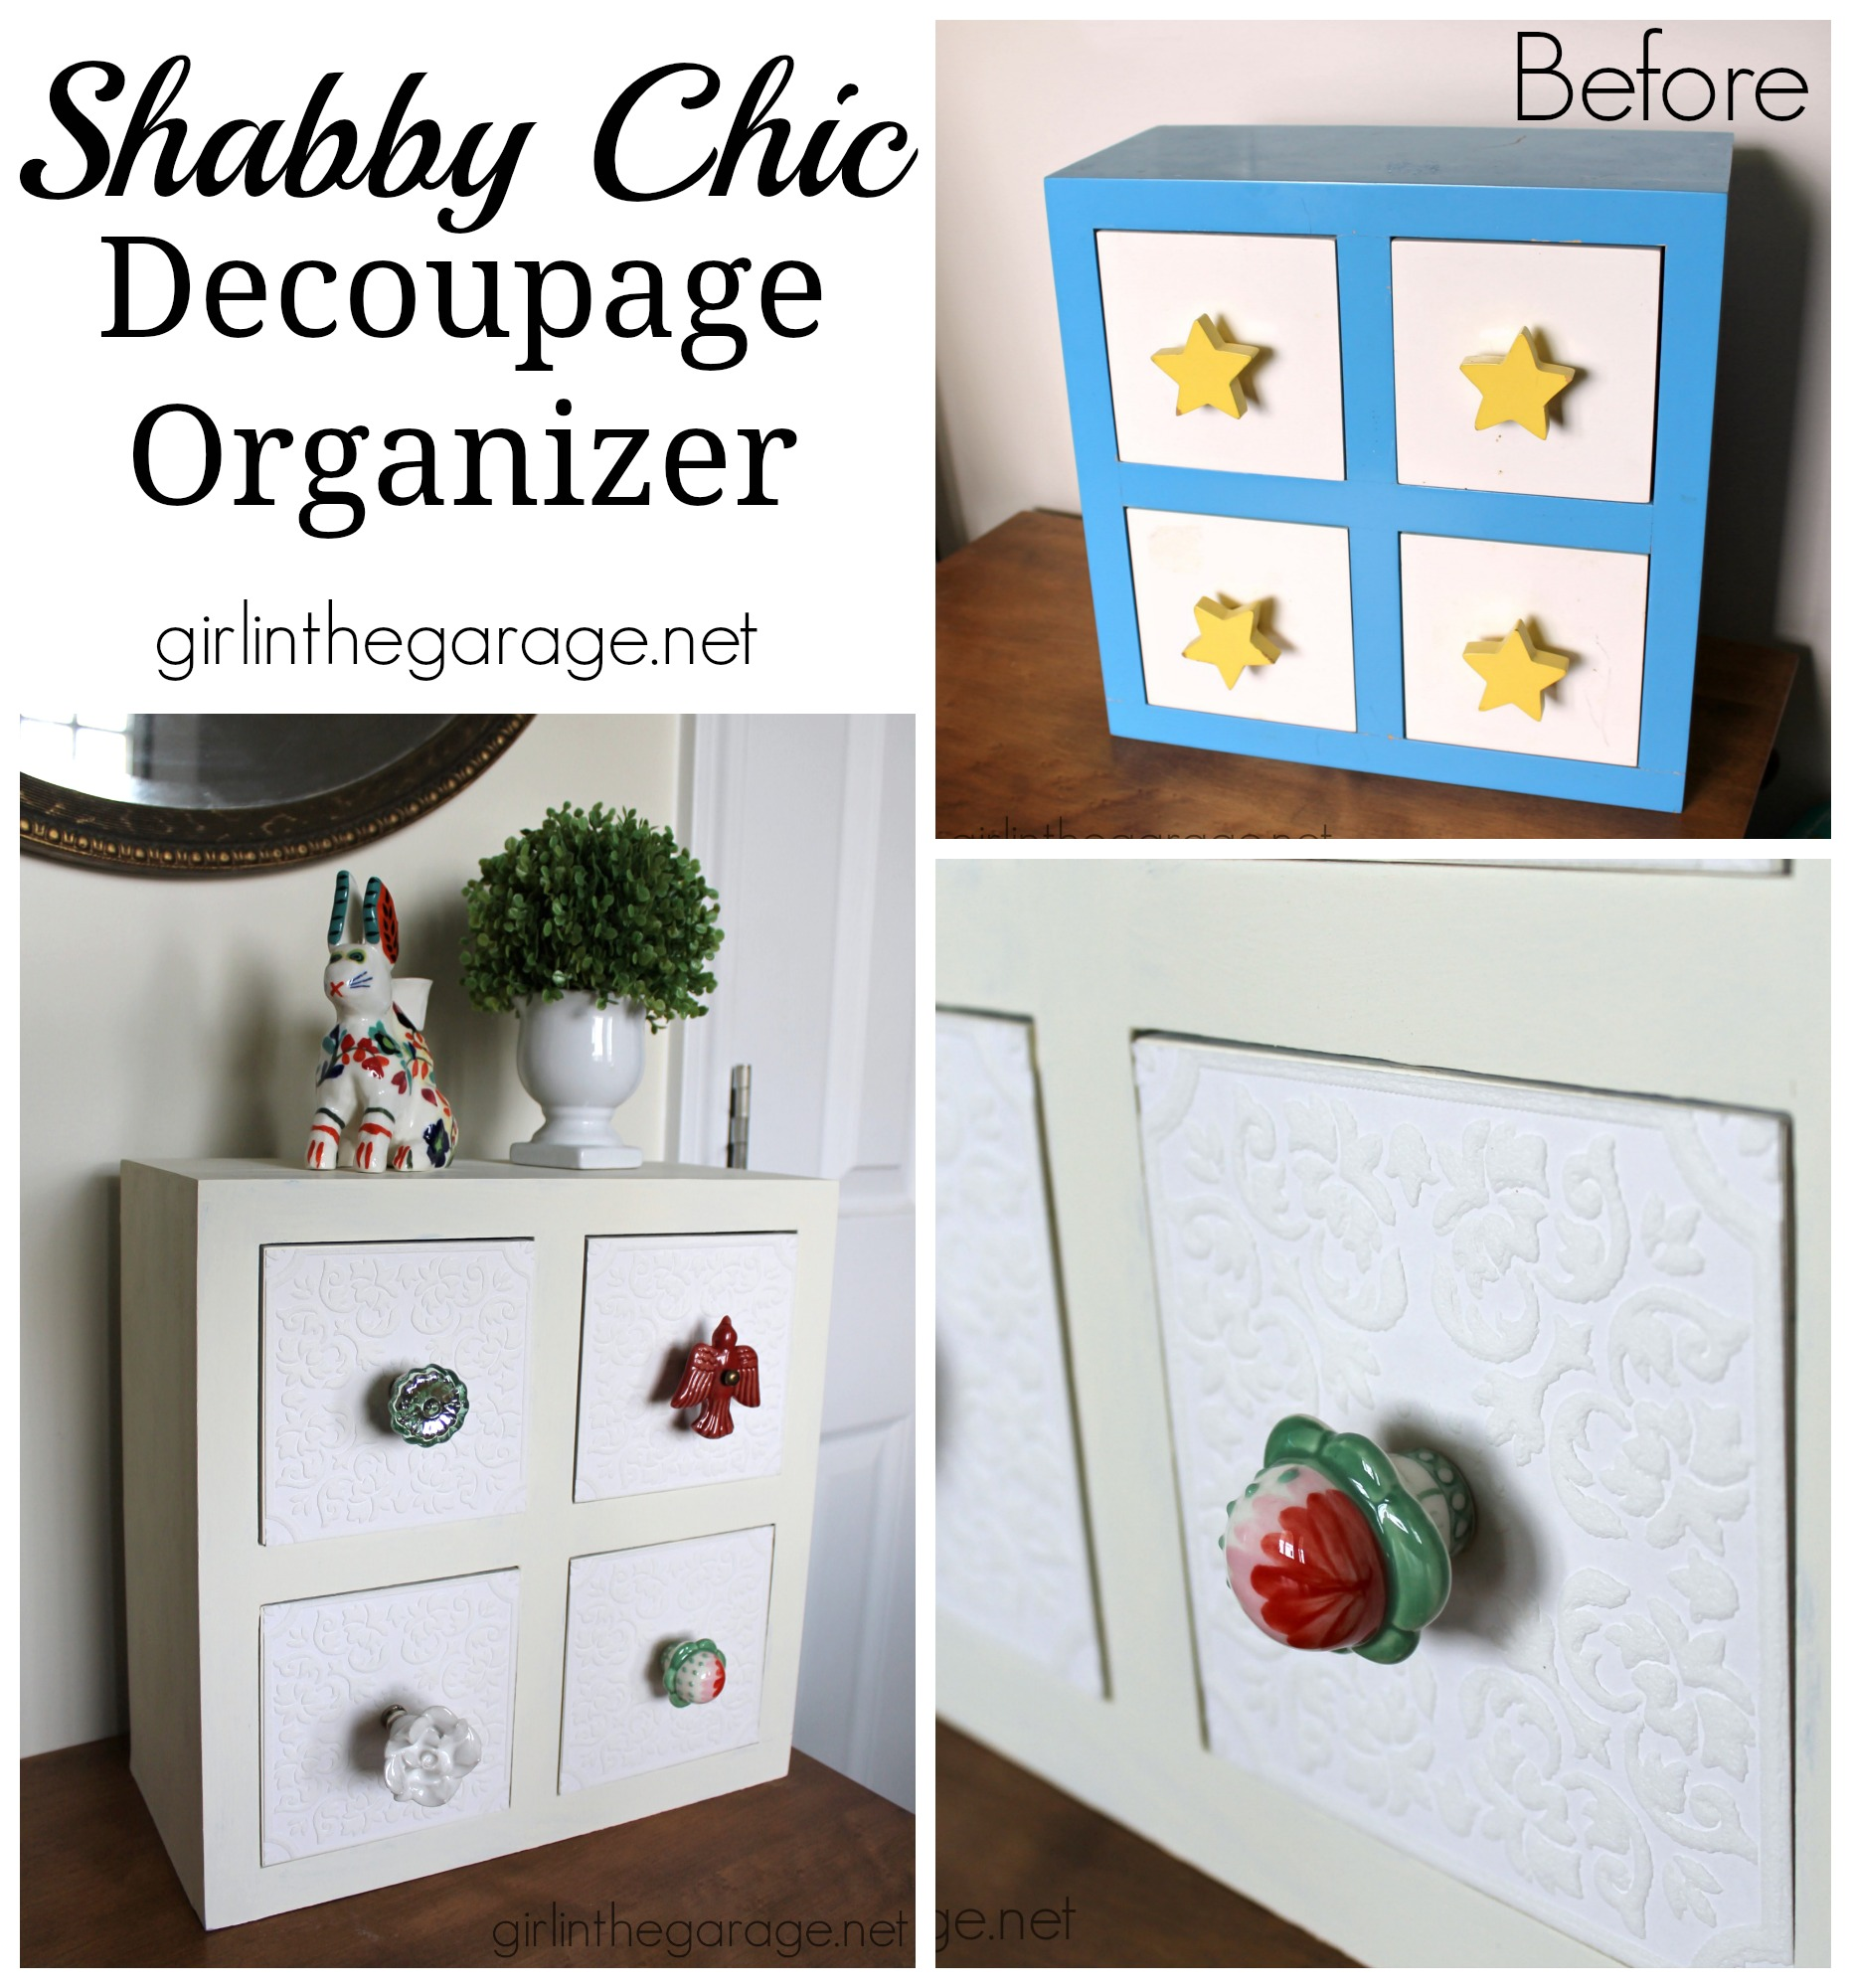 See How A Kidsu0027 Storage Box Was Transformed Into A Shabby Chic Organizer  With Chalk